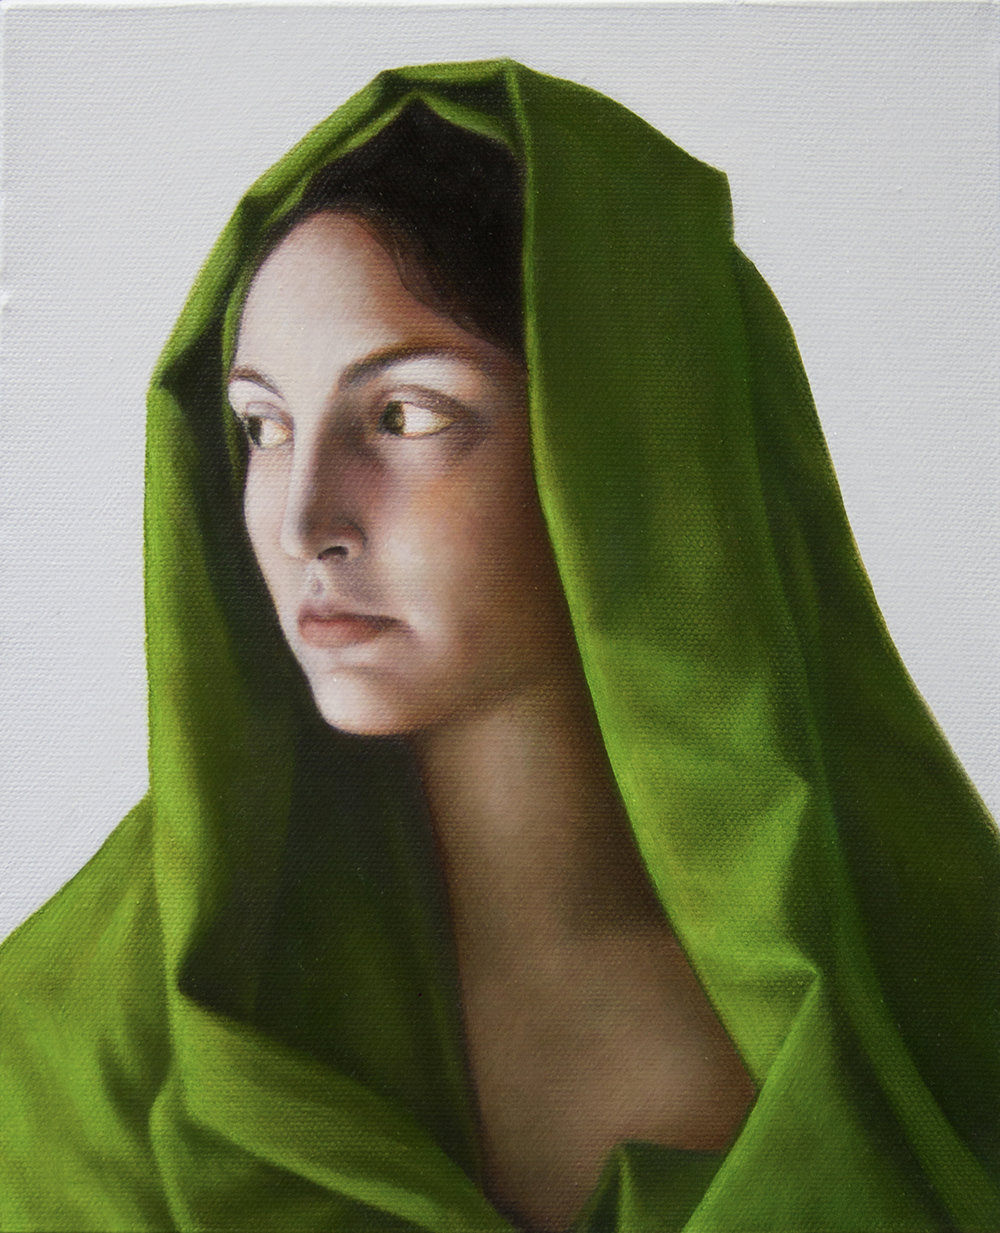 Penelope, oil on canvas, 25 x 20 cm, 2014